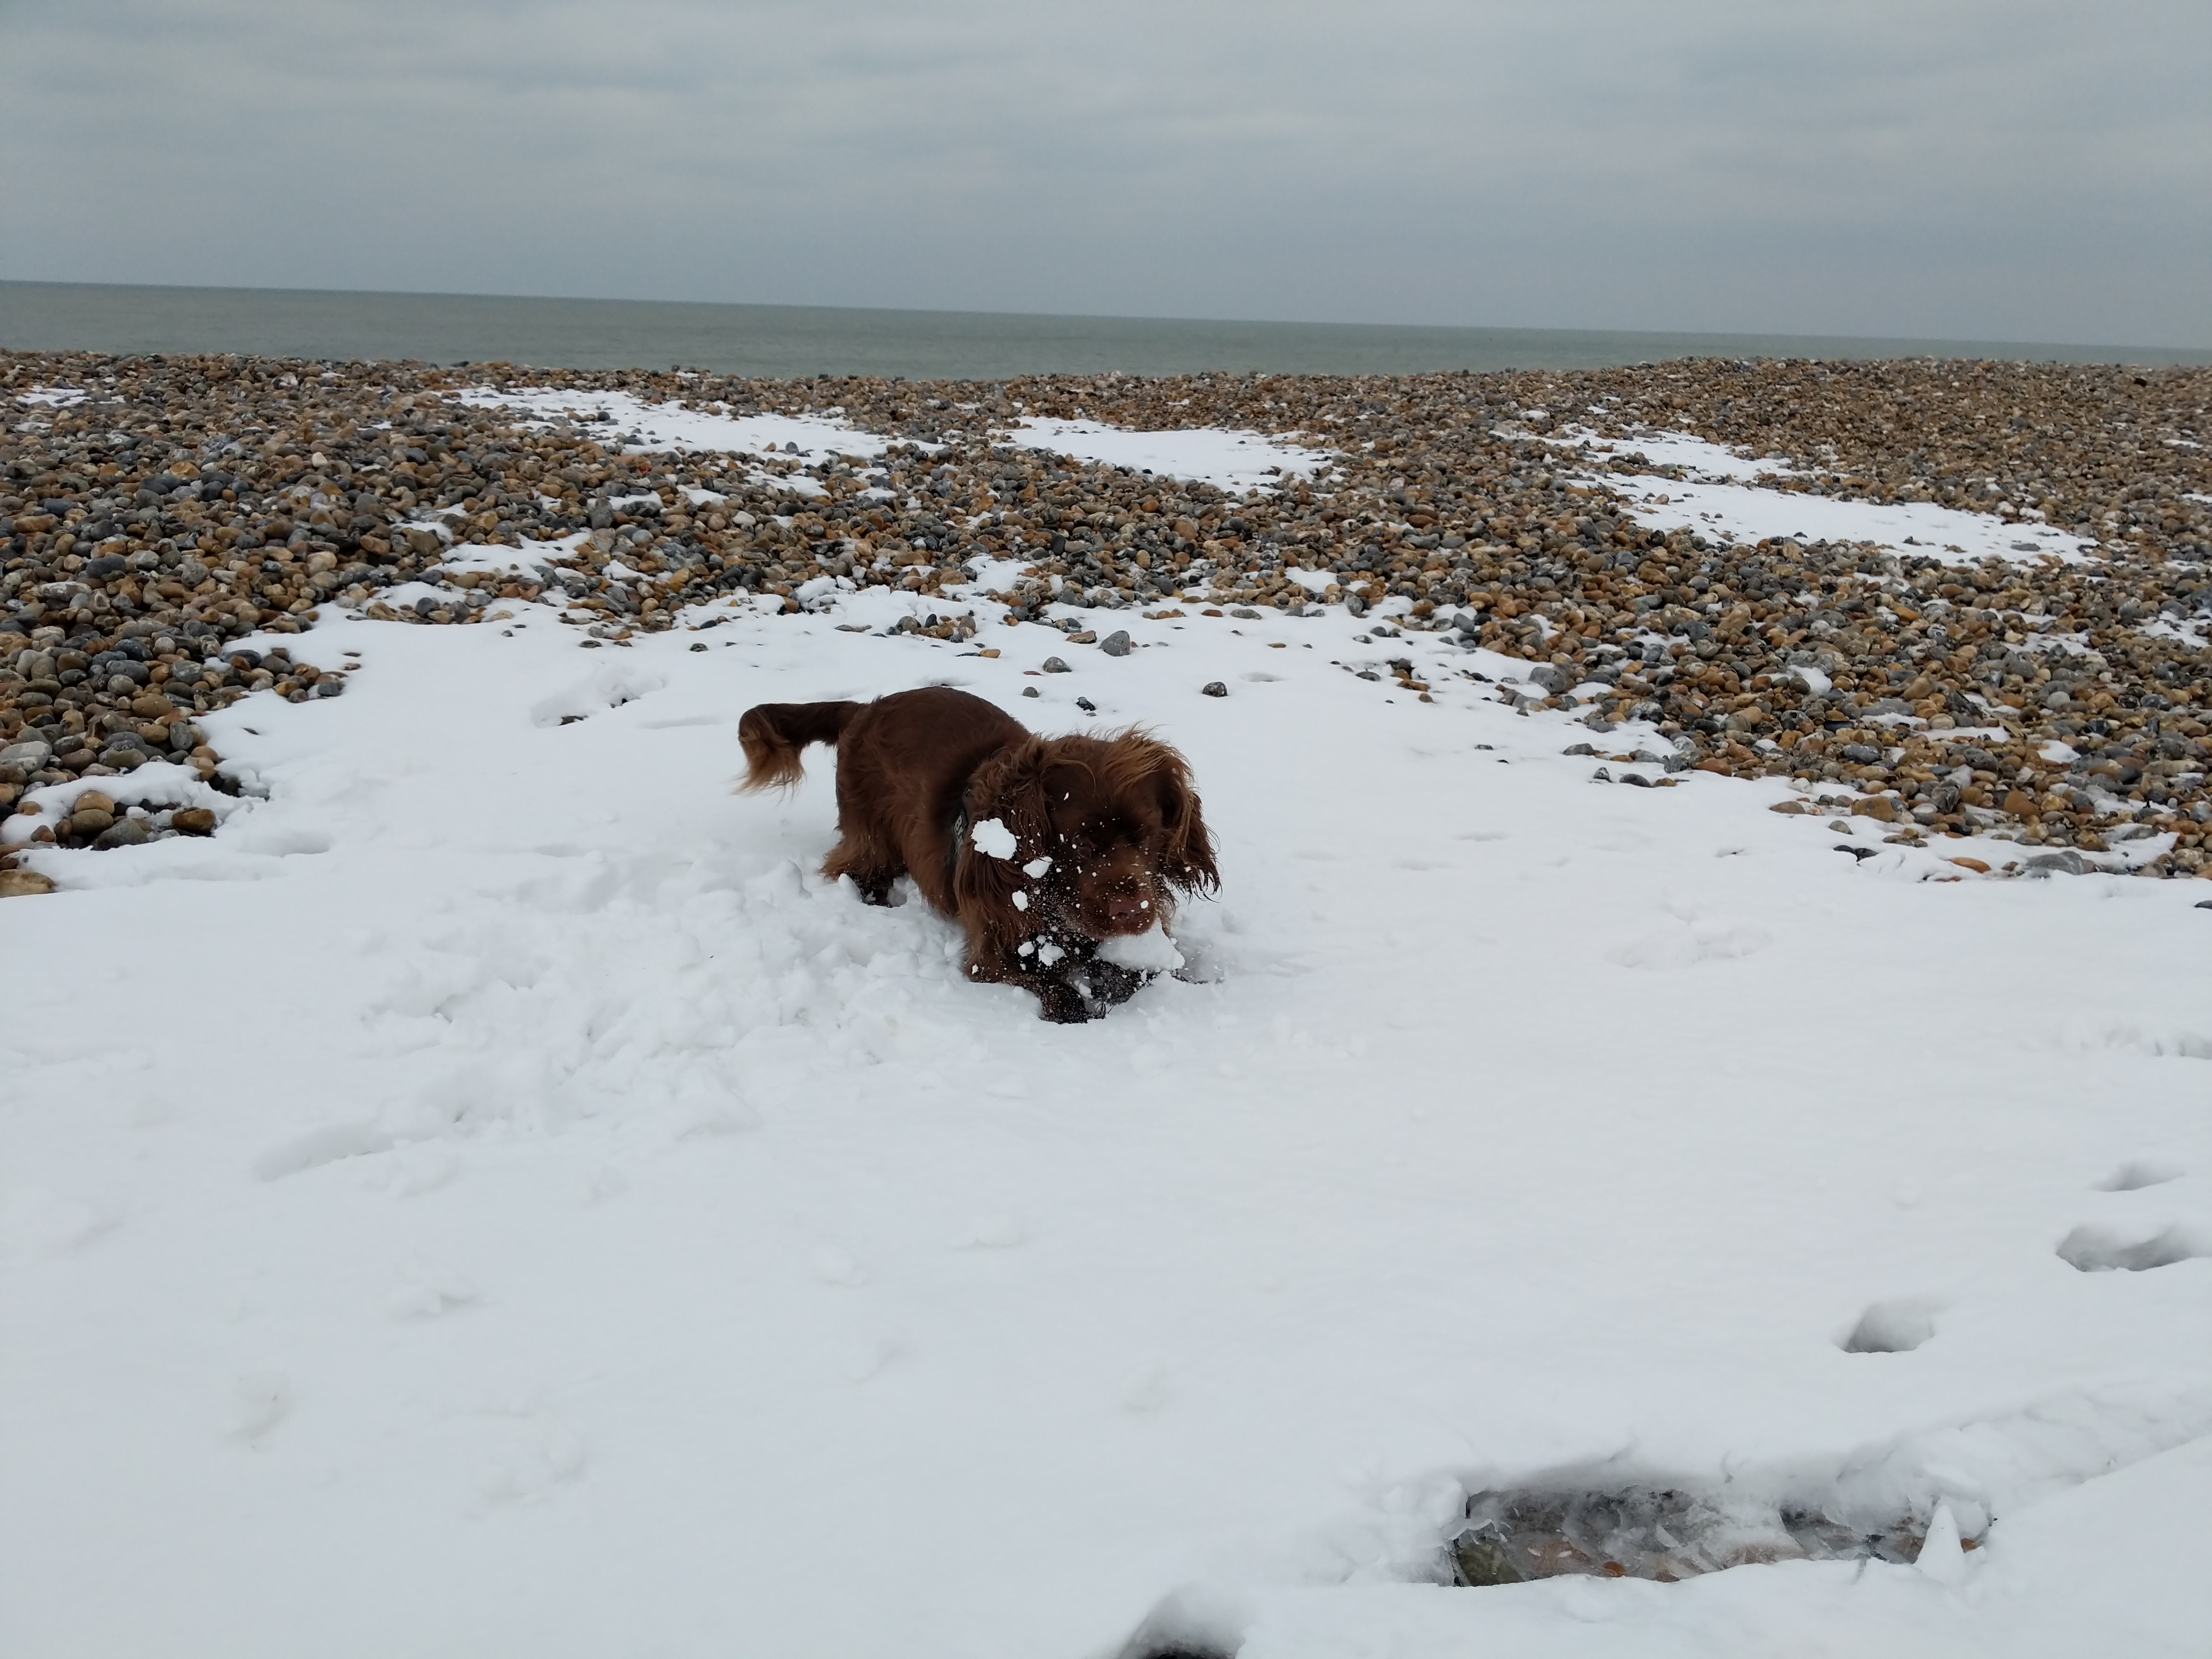 Sussex Spaniel pouncing on a layer of snow on a pebble beach.